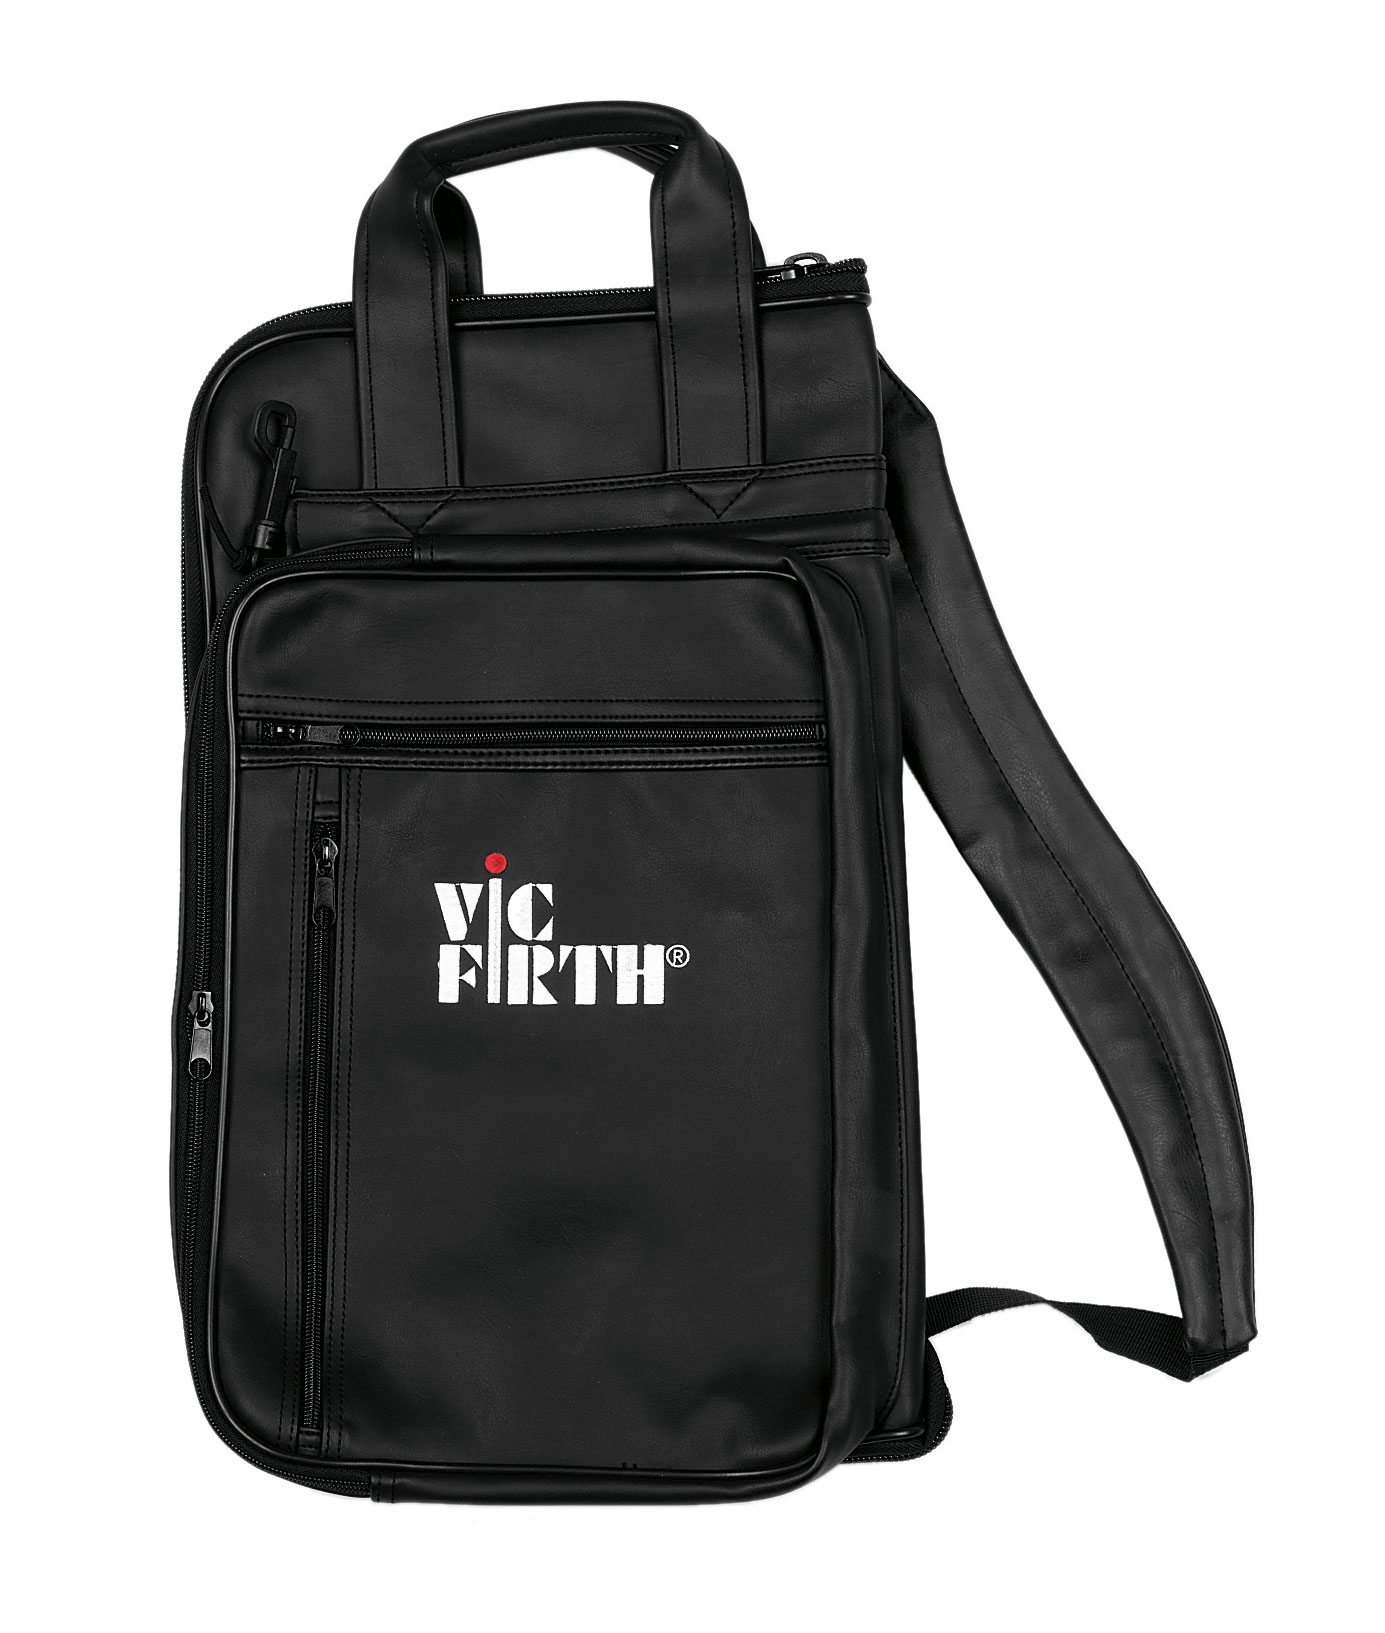 Vic Firth Vinyl Stick Bag